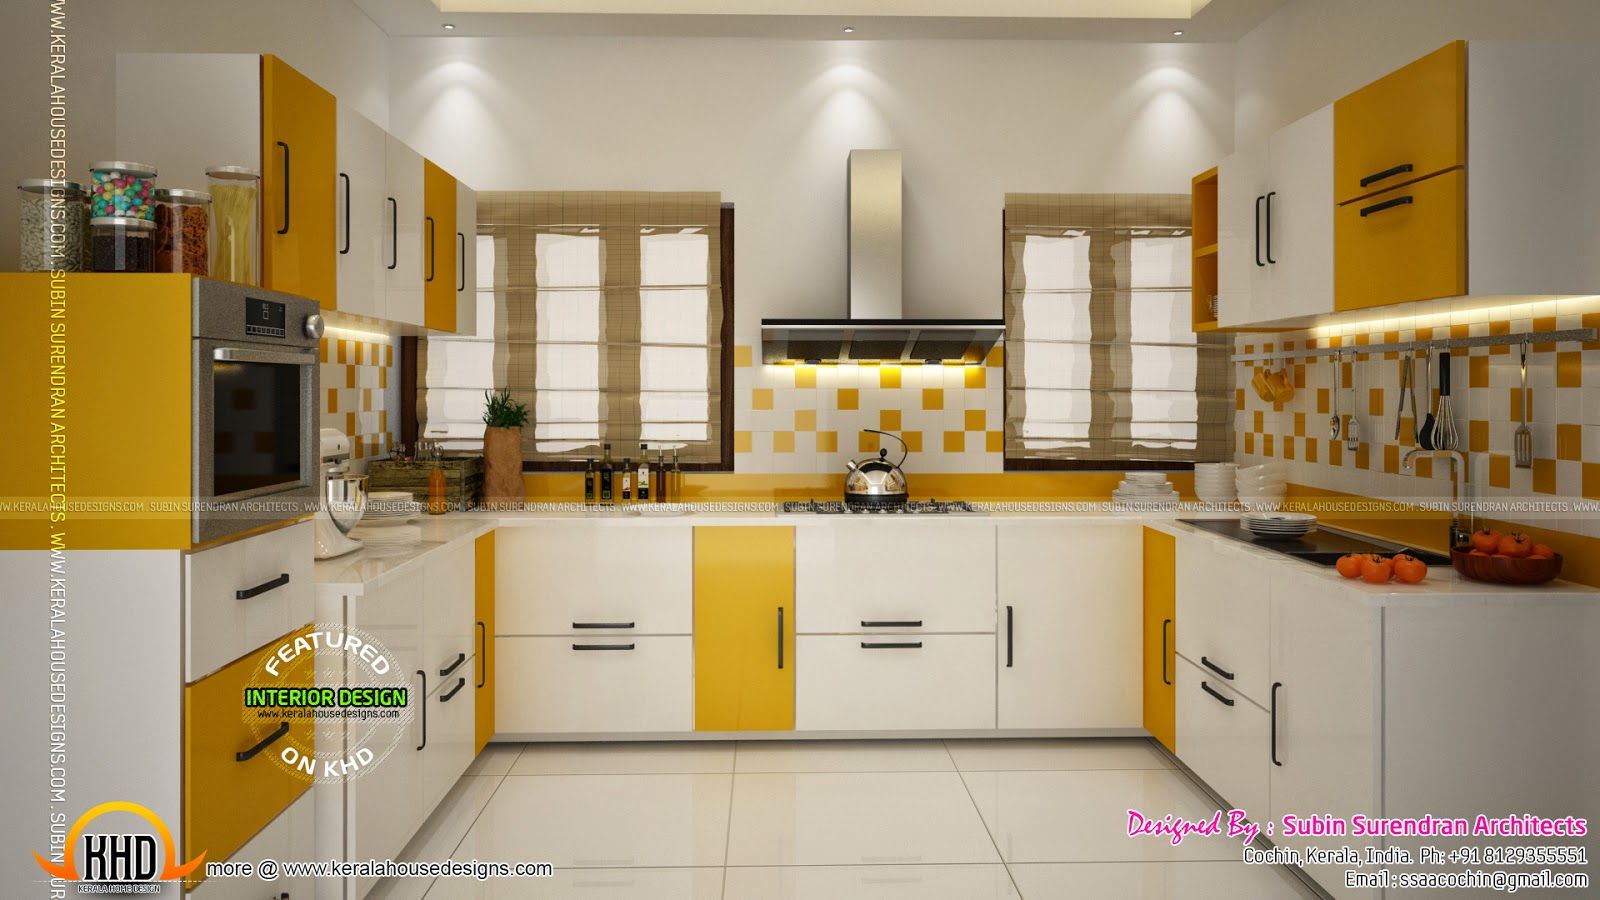 Kerala style low cost double storied home keralahousedesigns for New kitchen designs in kerala